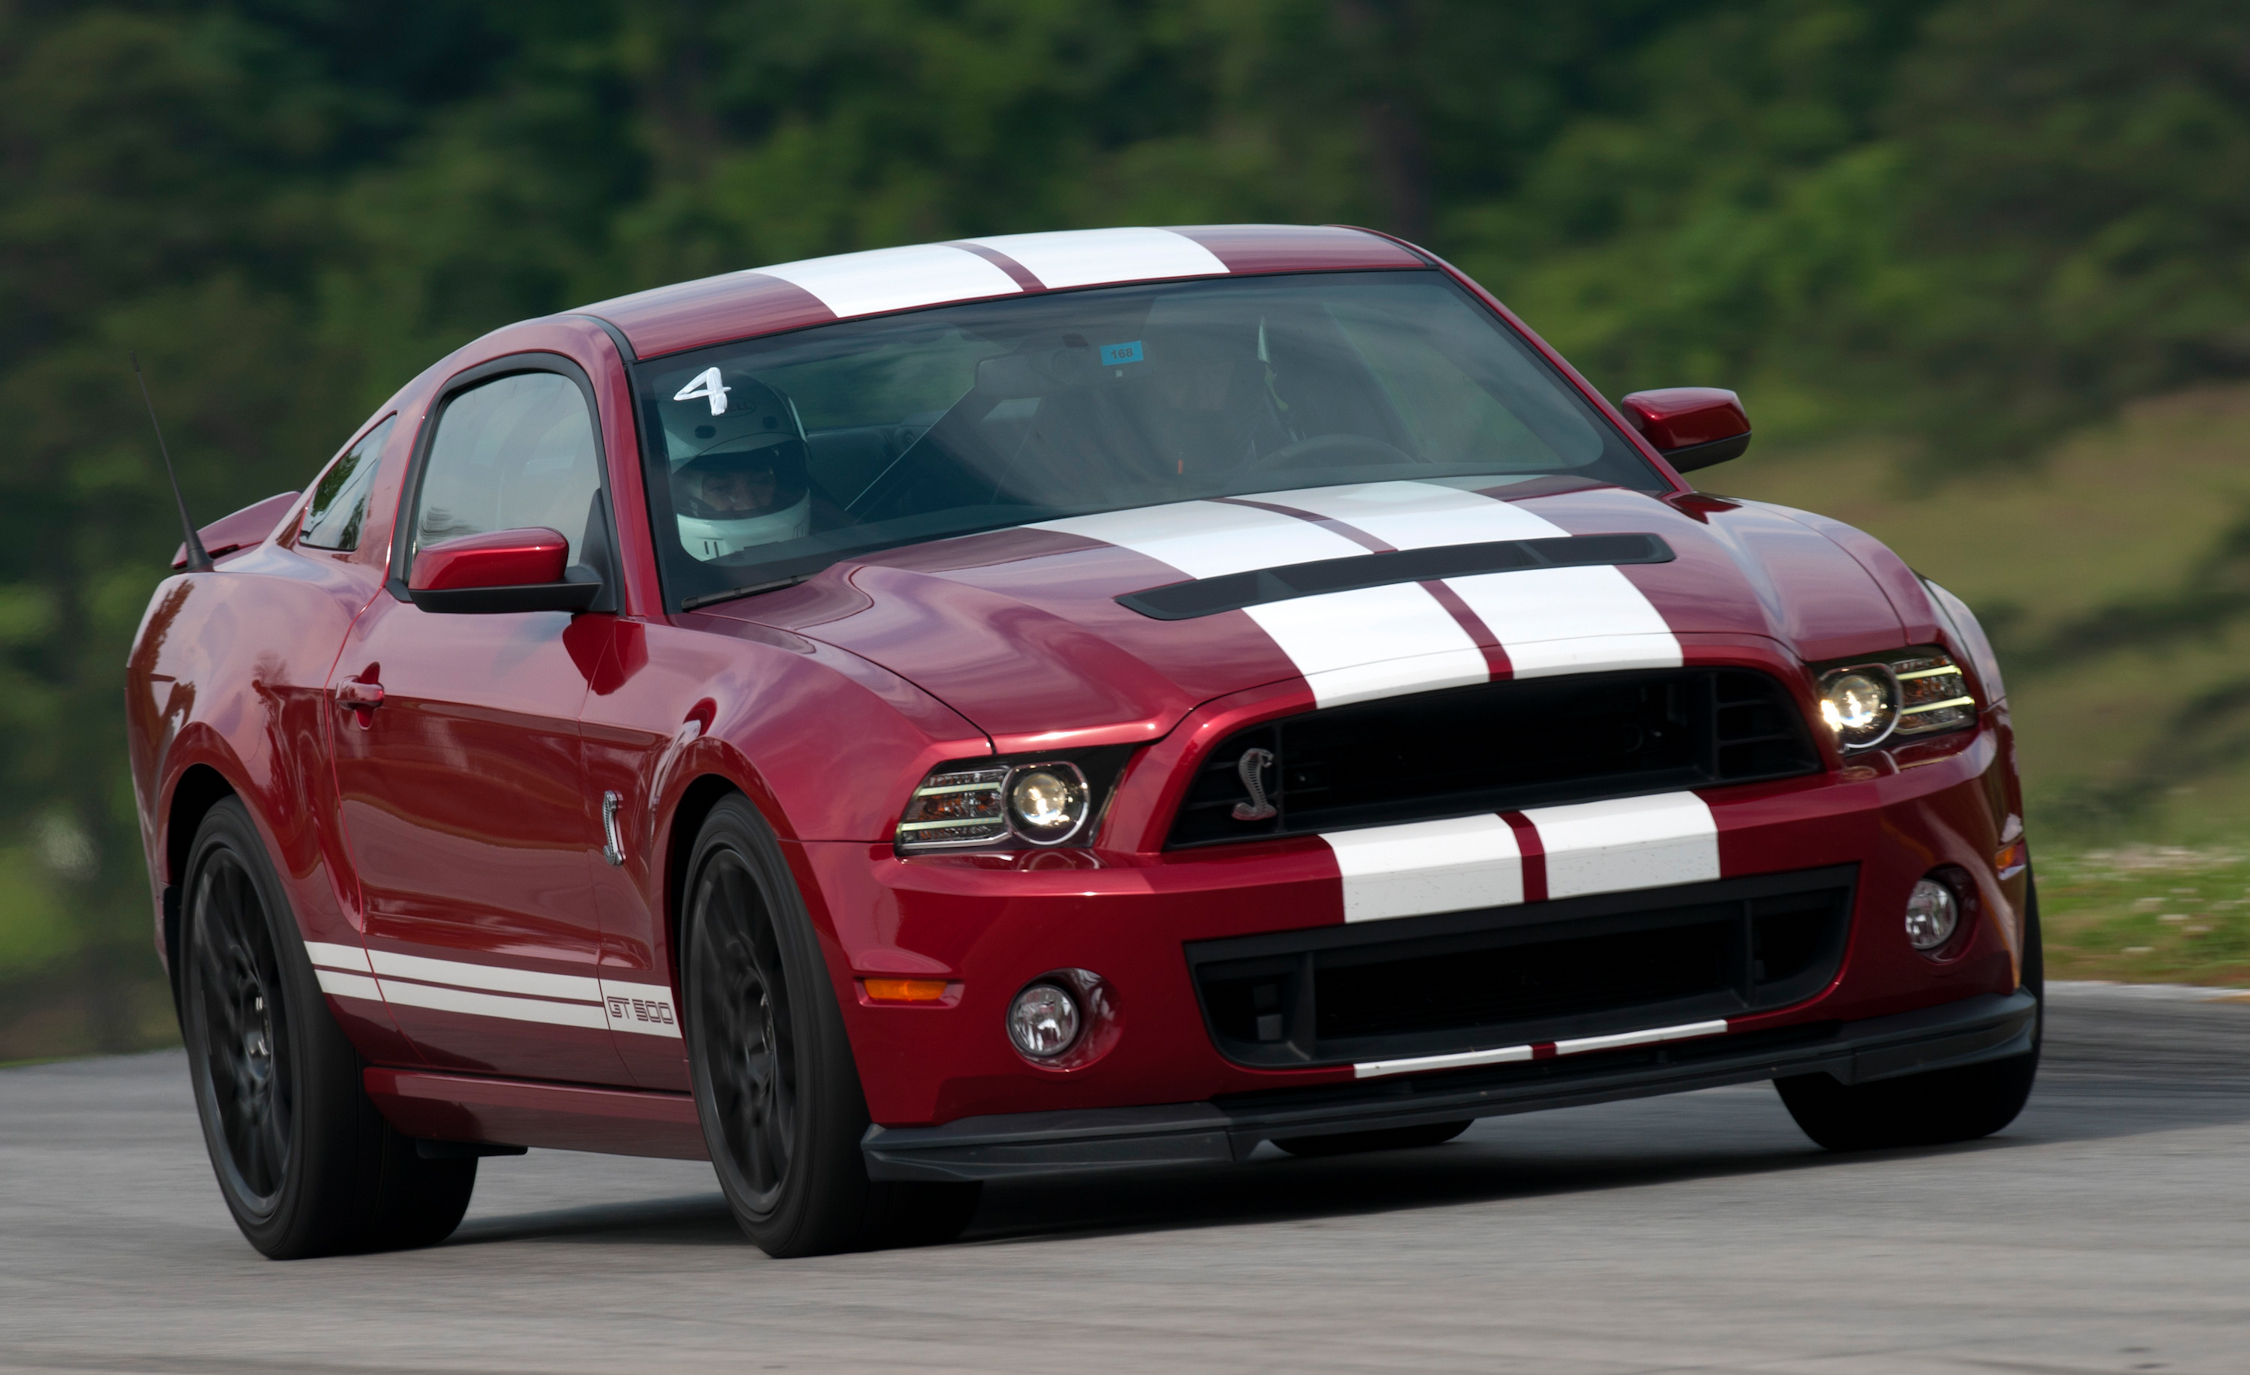 2013 Ford Mustang Shelby GT500 Red Test Drive Front And Side View (View 8 of 47)